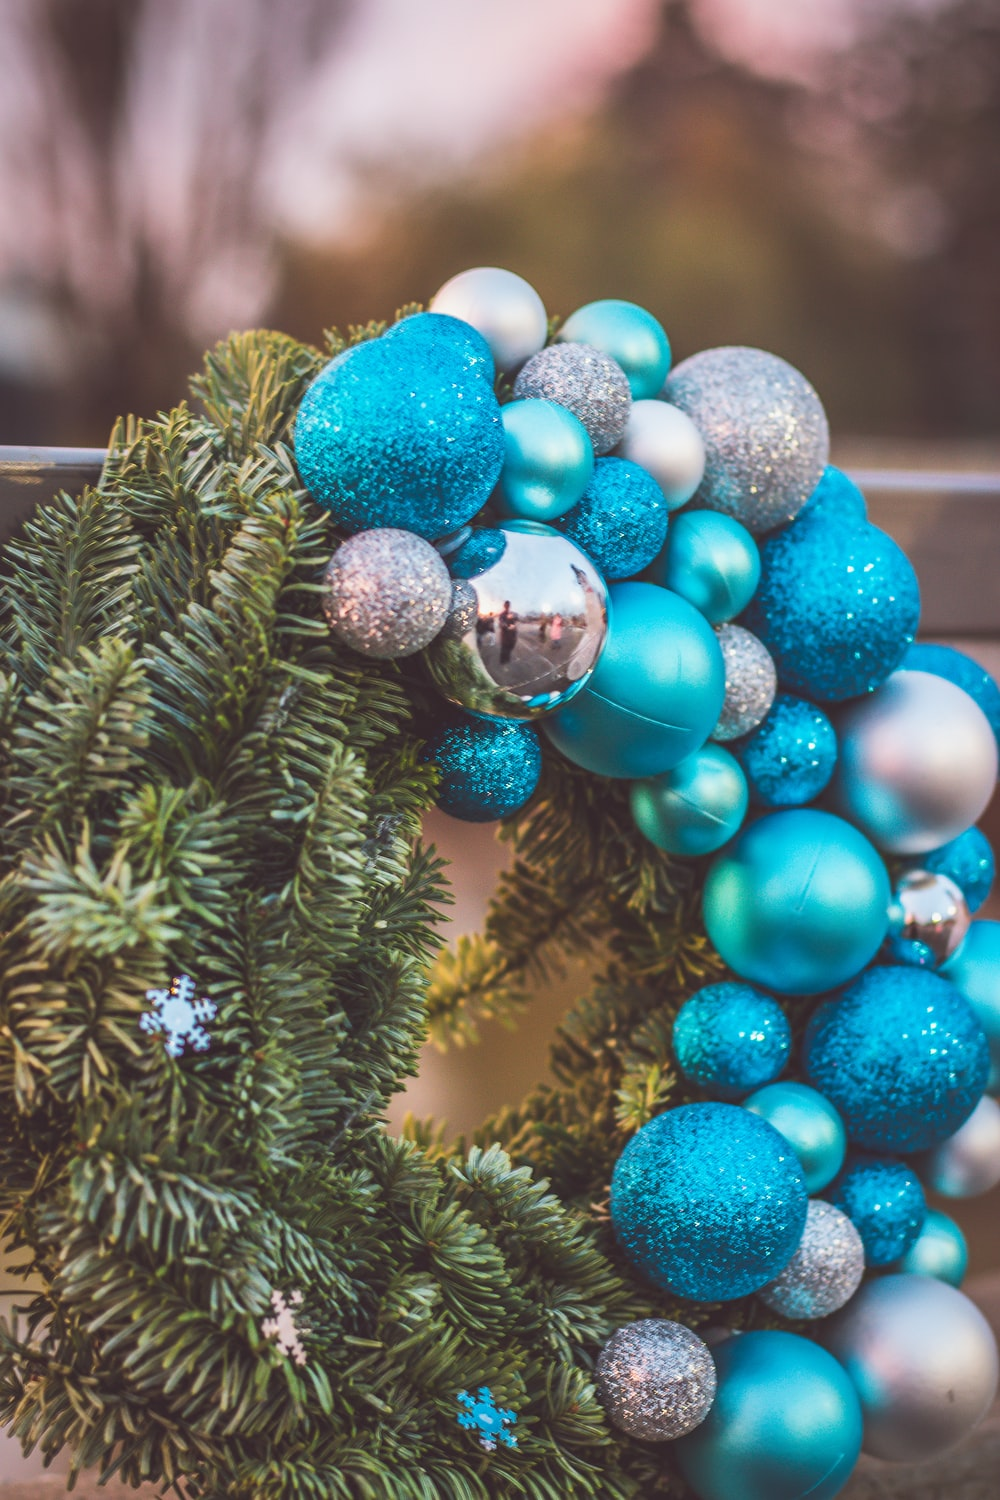 blue and silver baubles on green pine tree